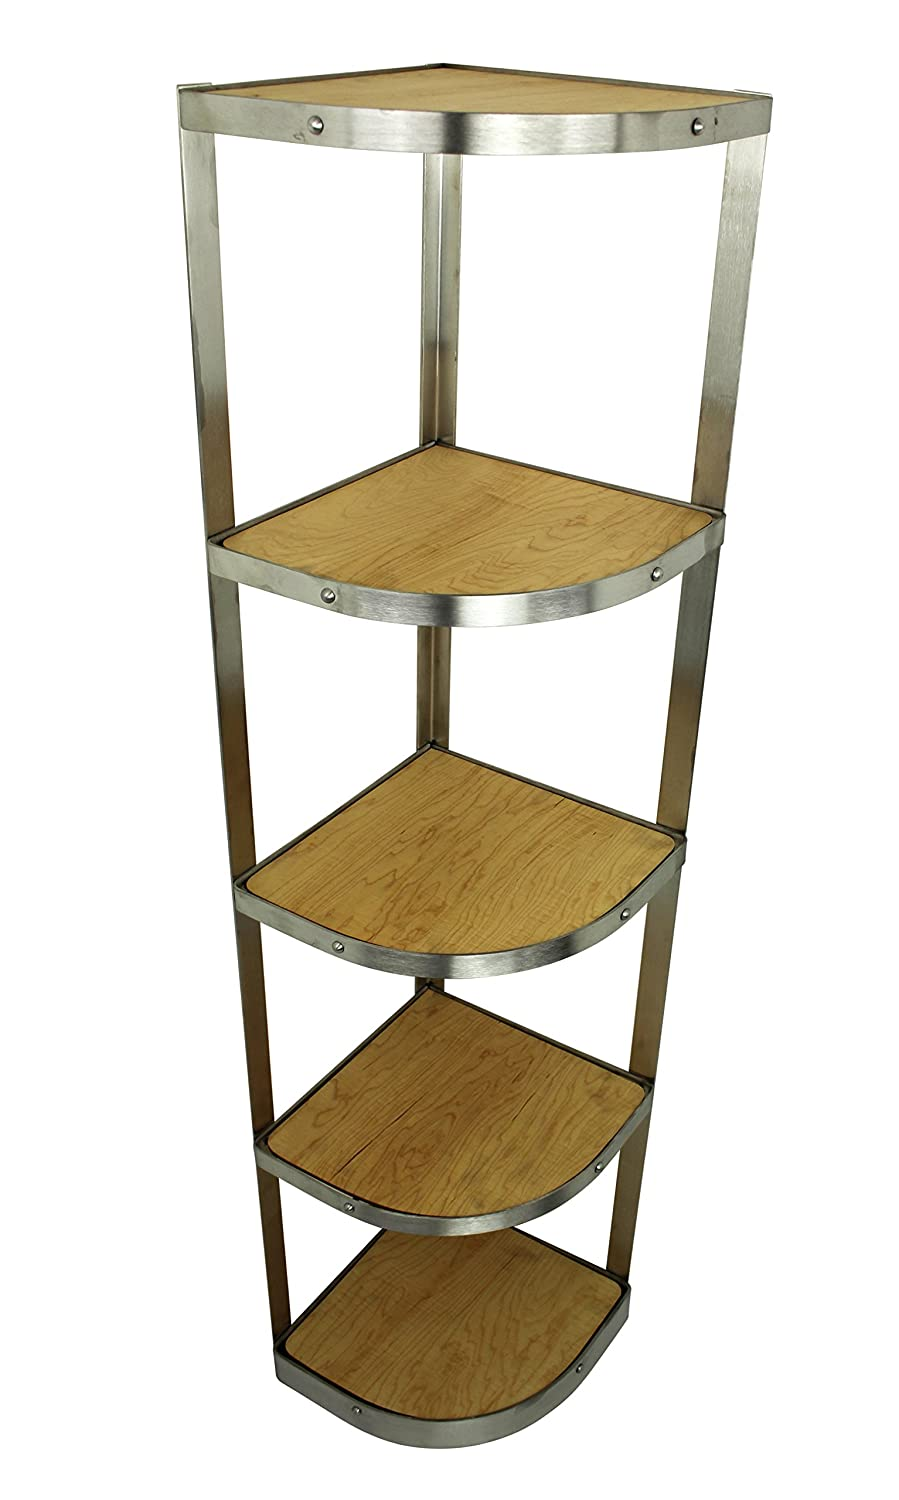 Handcrafted 5 Tier Corner Stand, Stainless Steel - Pot Racks Plus